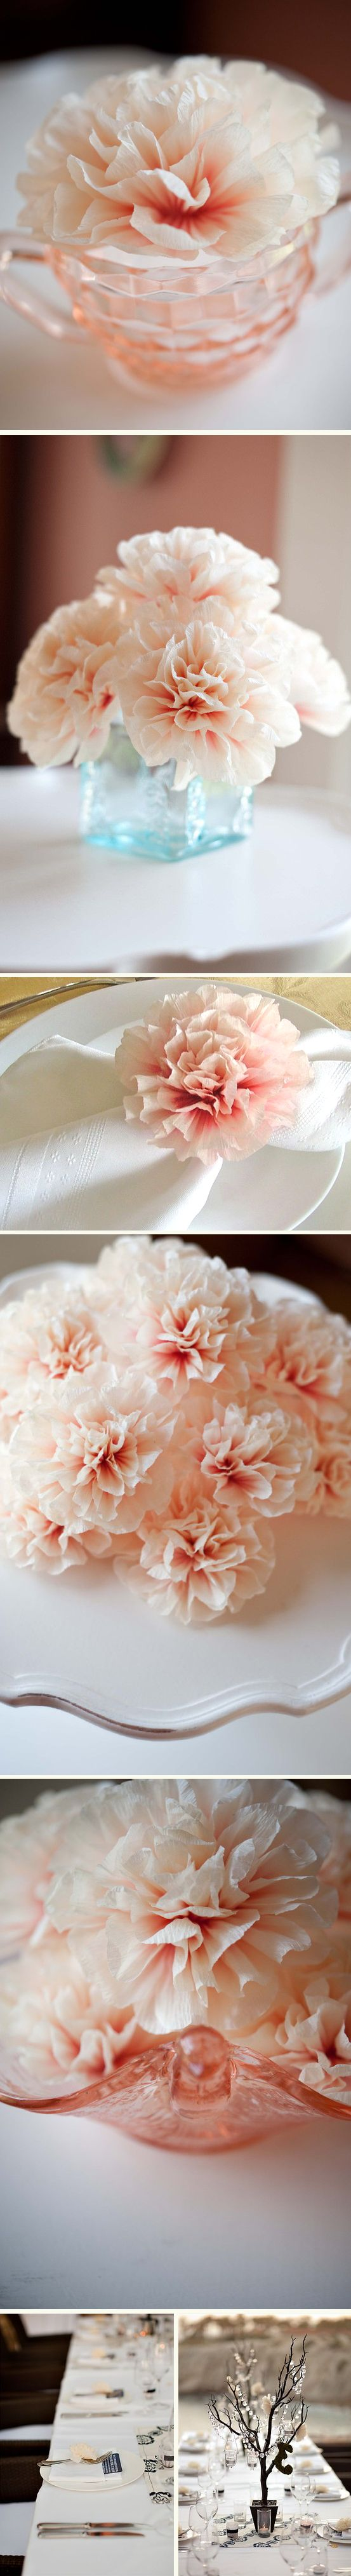 incredible crepe paper carnations.. and i'm not into fake flowers, ya'll